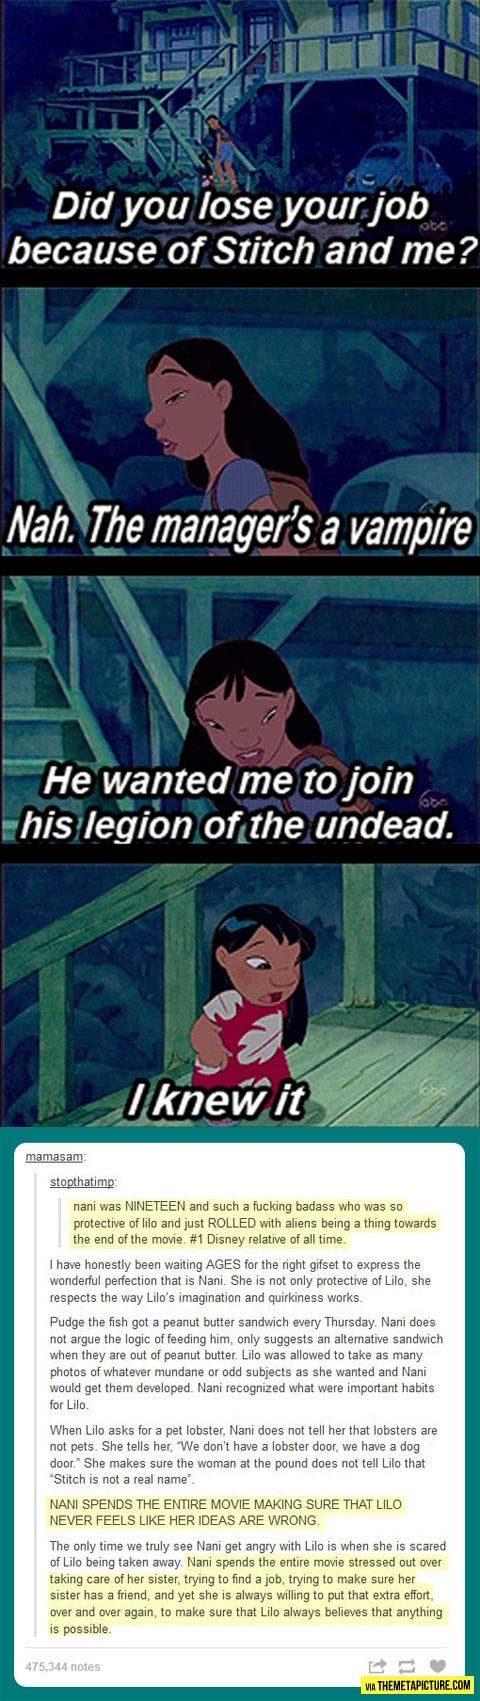 One of the best Disney characters: